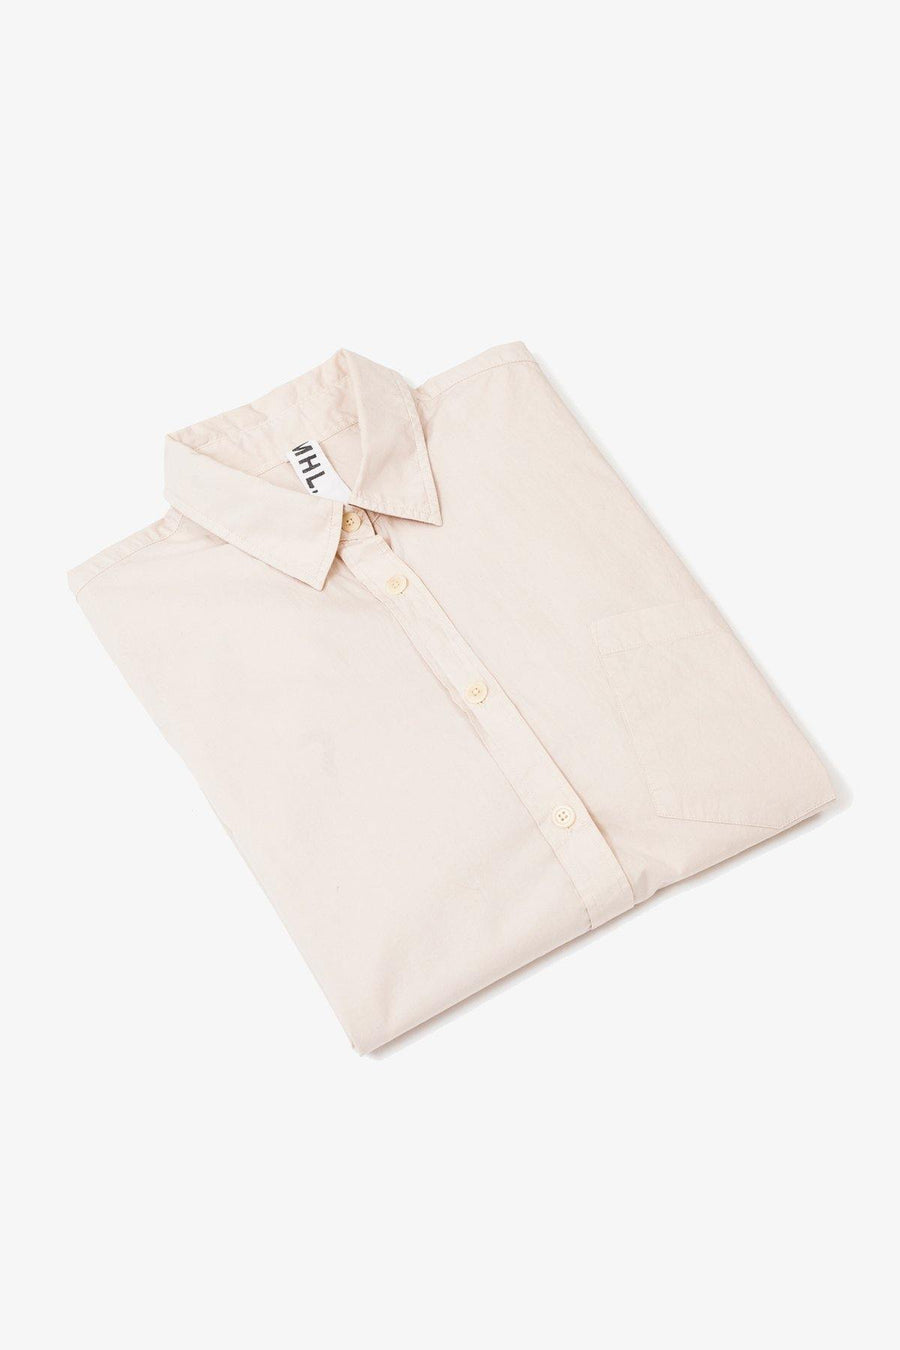 MHL Margaret Howell Shirt